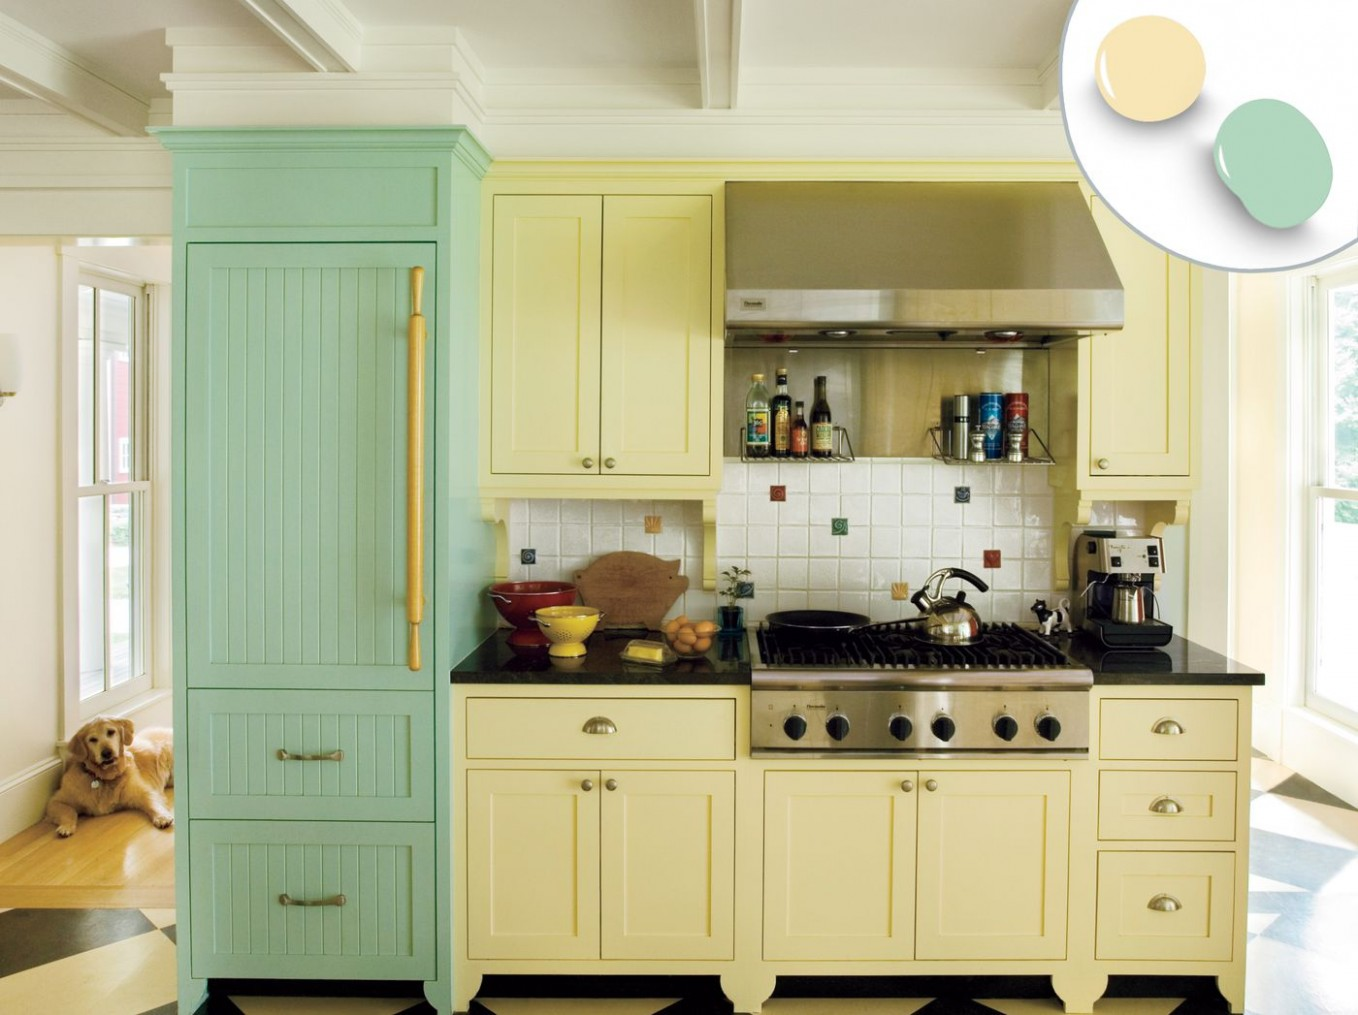 10 Kitchen Cabinet Color Ideas: Two-Tone Combinations - This Old House - Red Bank Kitchen Cabinets